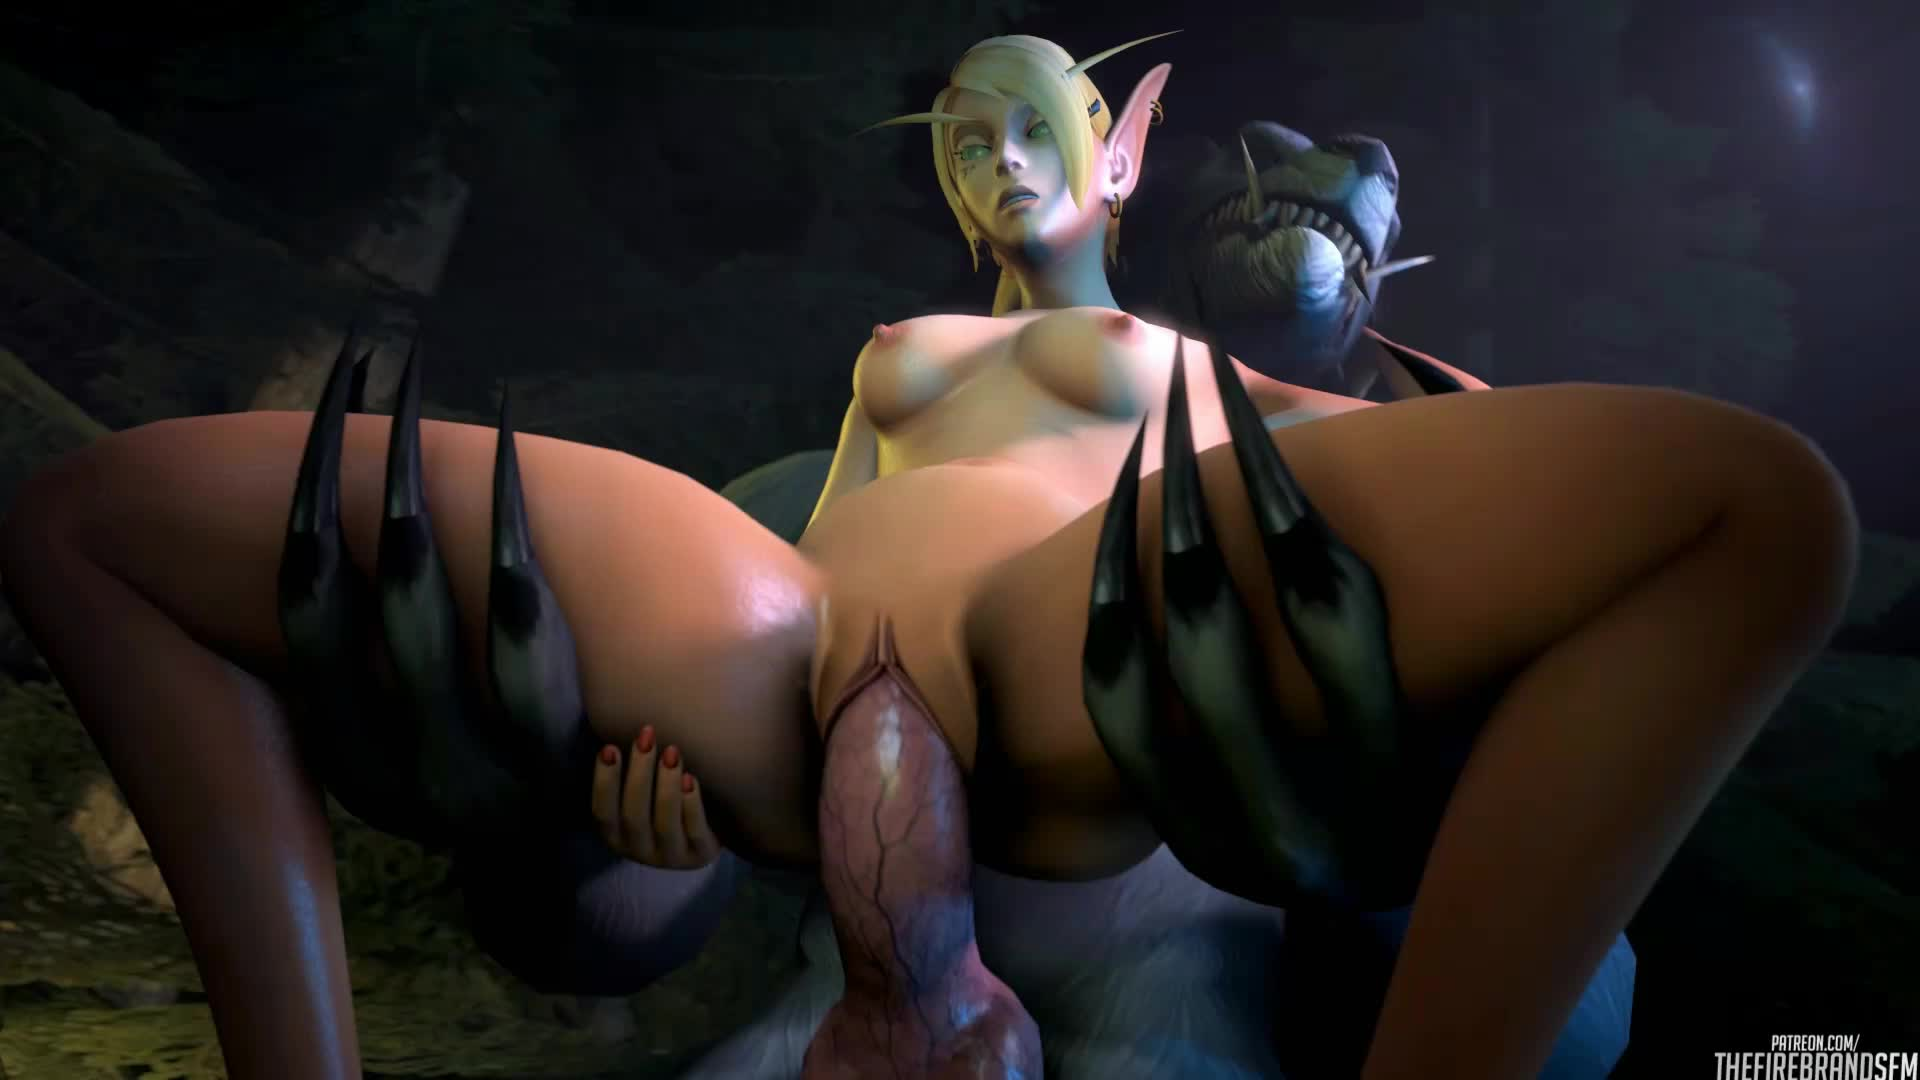 Elf porn animated hot cock riding gif pron thumbs